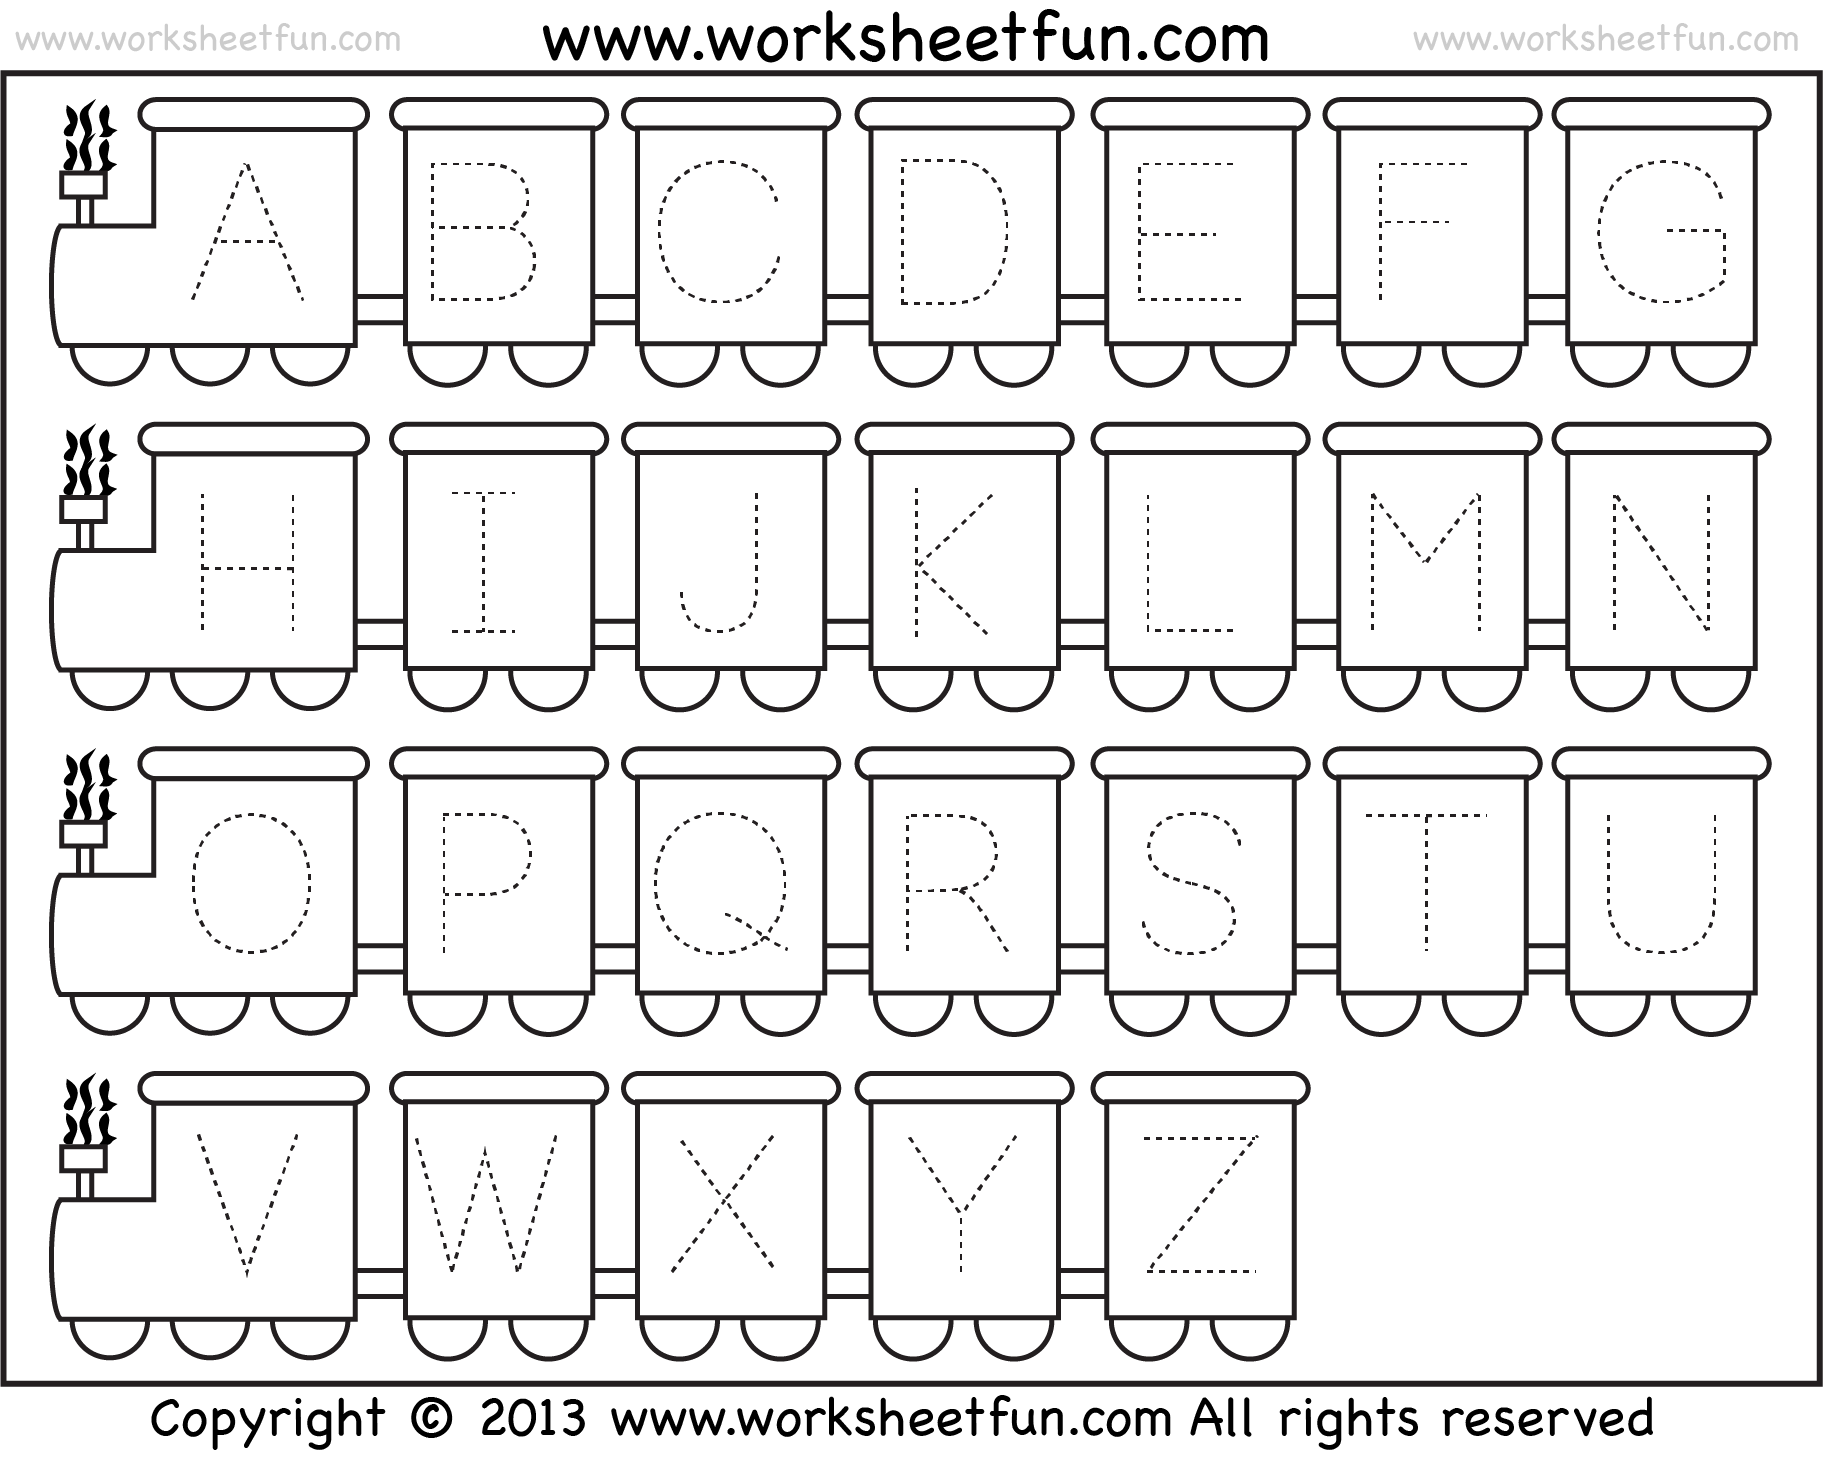 Letter Tracing Worksheet Train Theme Free Printable Worksheets Worksheetfun